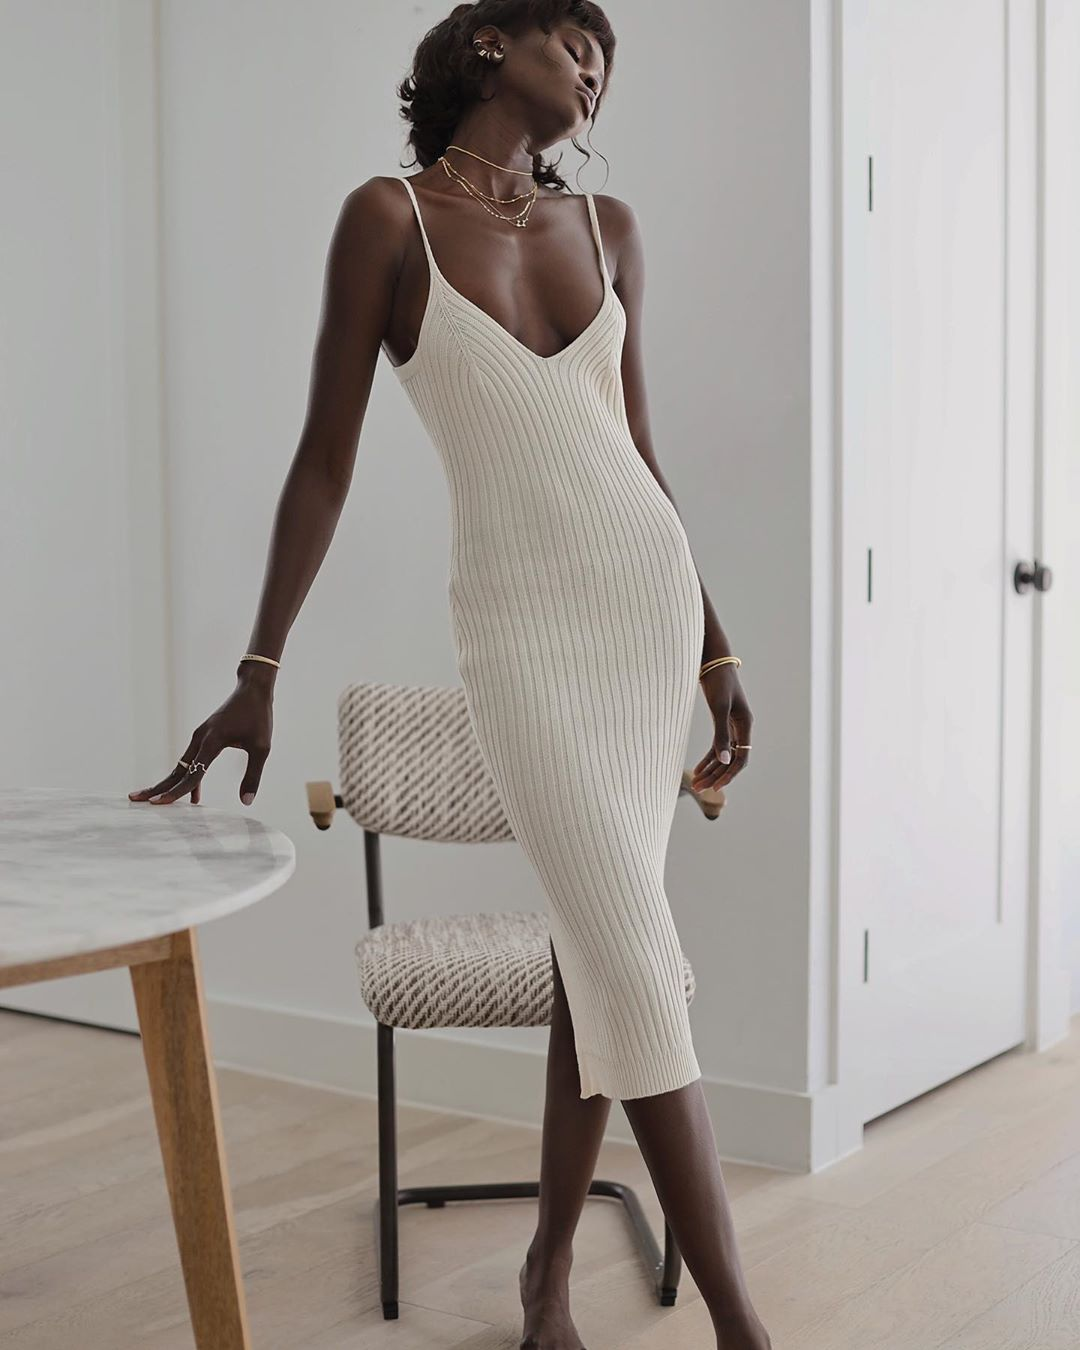 The Ribbed Dress Is a Summer Must-Have